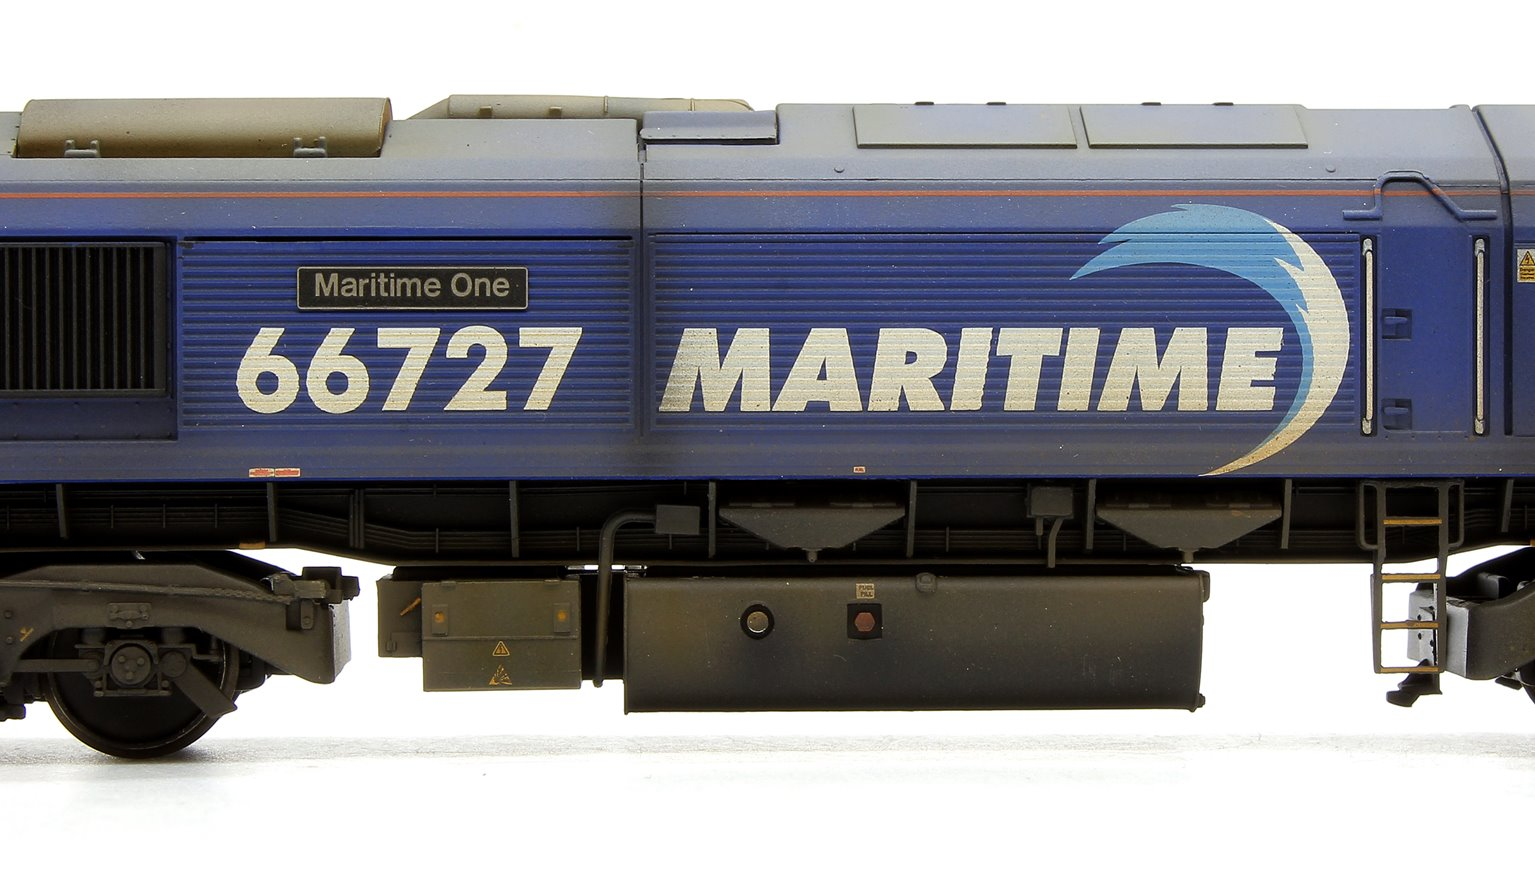 Class 66 727 'Maritime One' GBRf Maritime Diesel Locomotive Weathered